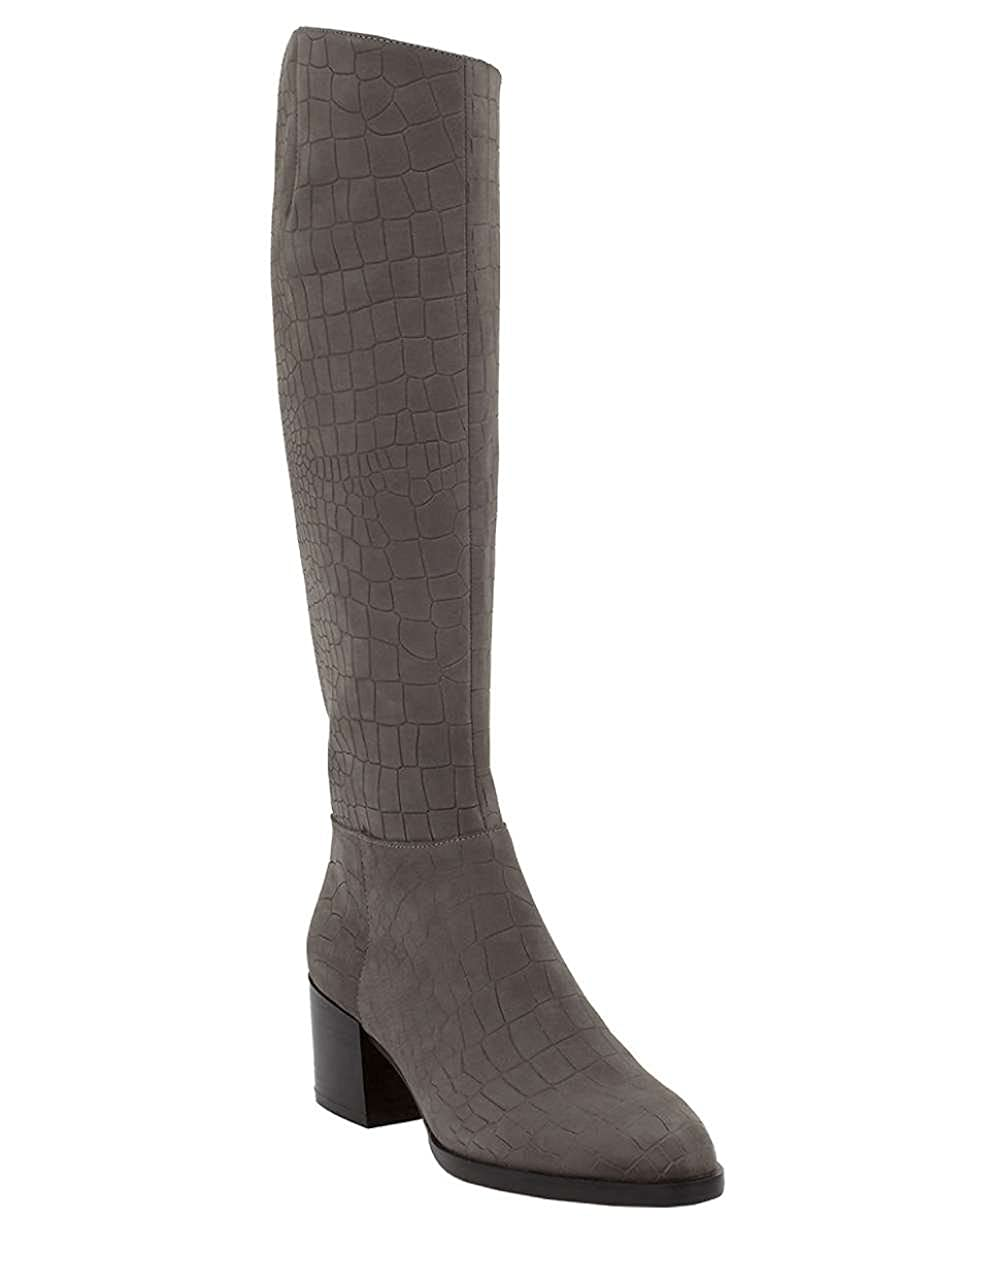 b34c62bb8d20a Sam Edelman Women s Joelle Steel Grey Boot  Buy Online at Low Prices in  India - Amazon.in